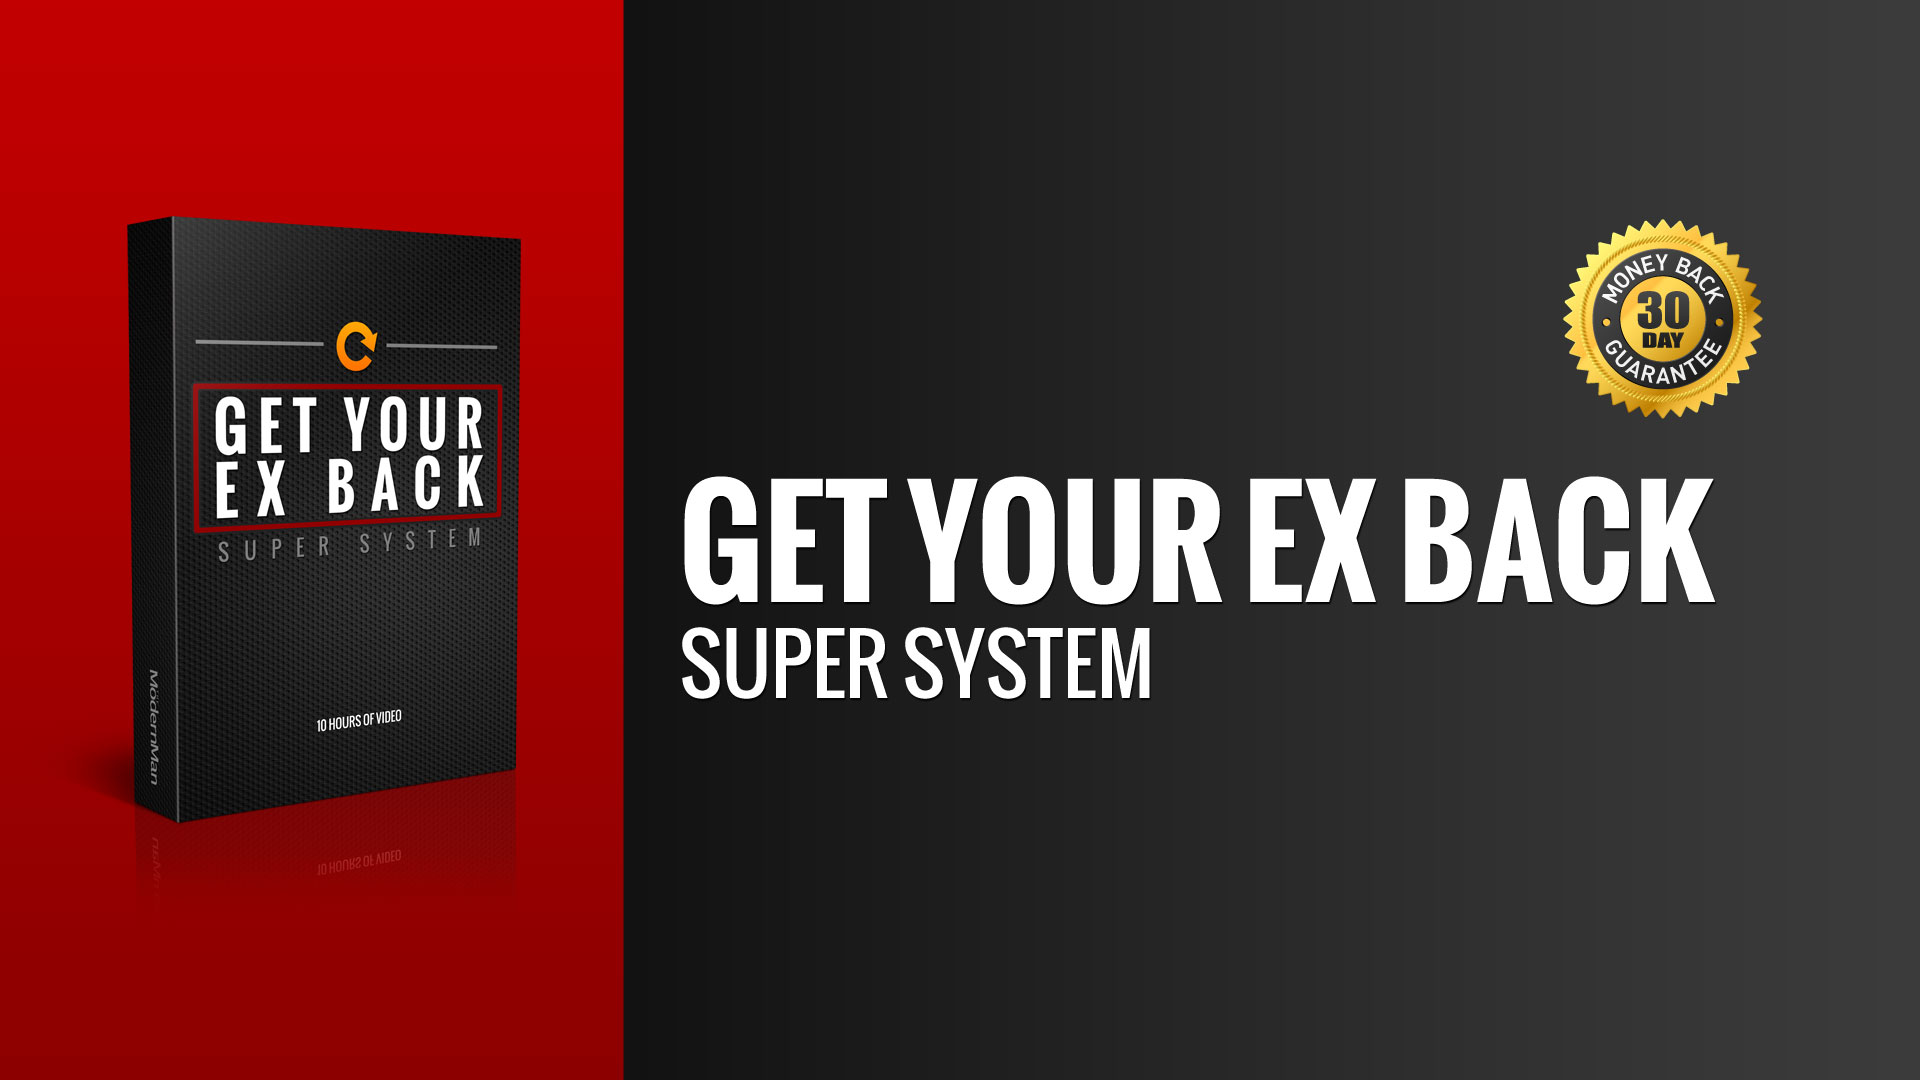 Get Your Ex Back: Super System